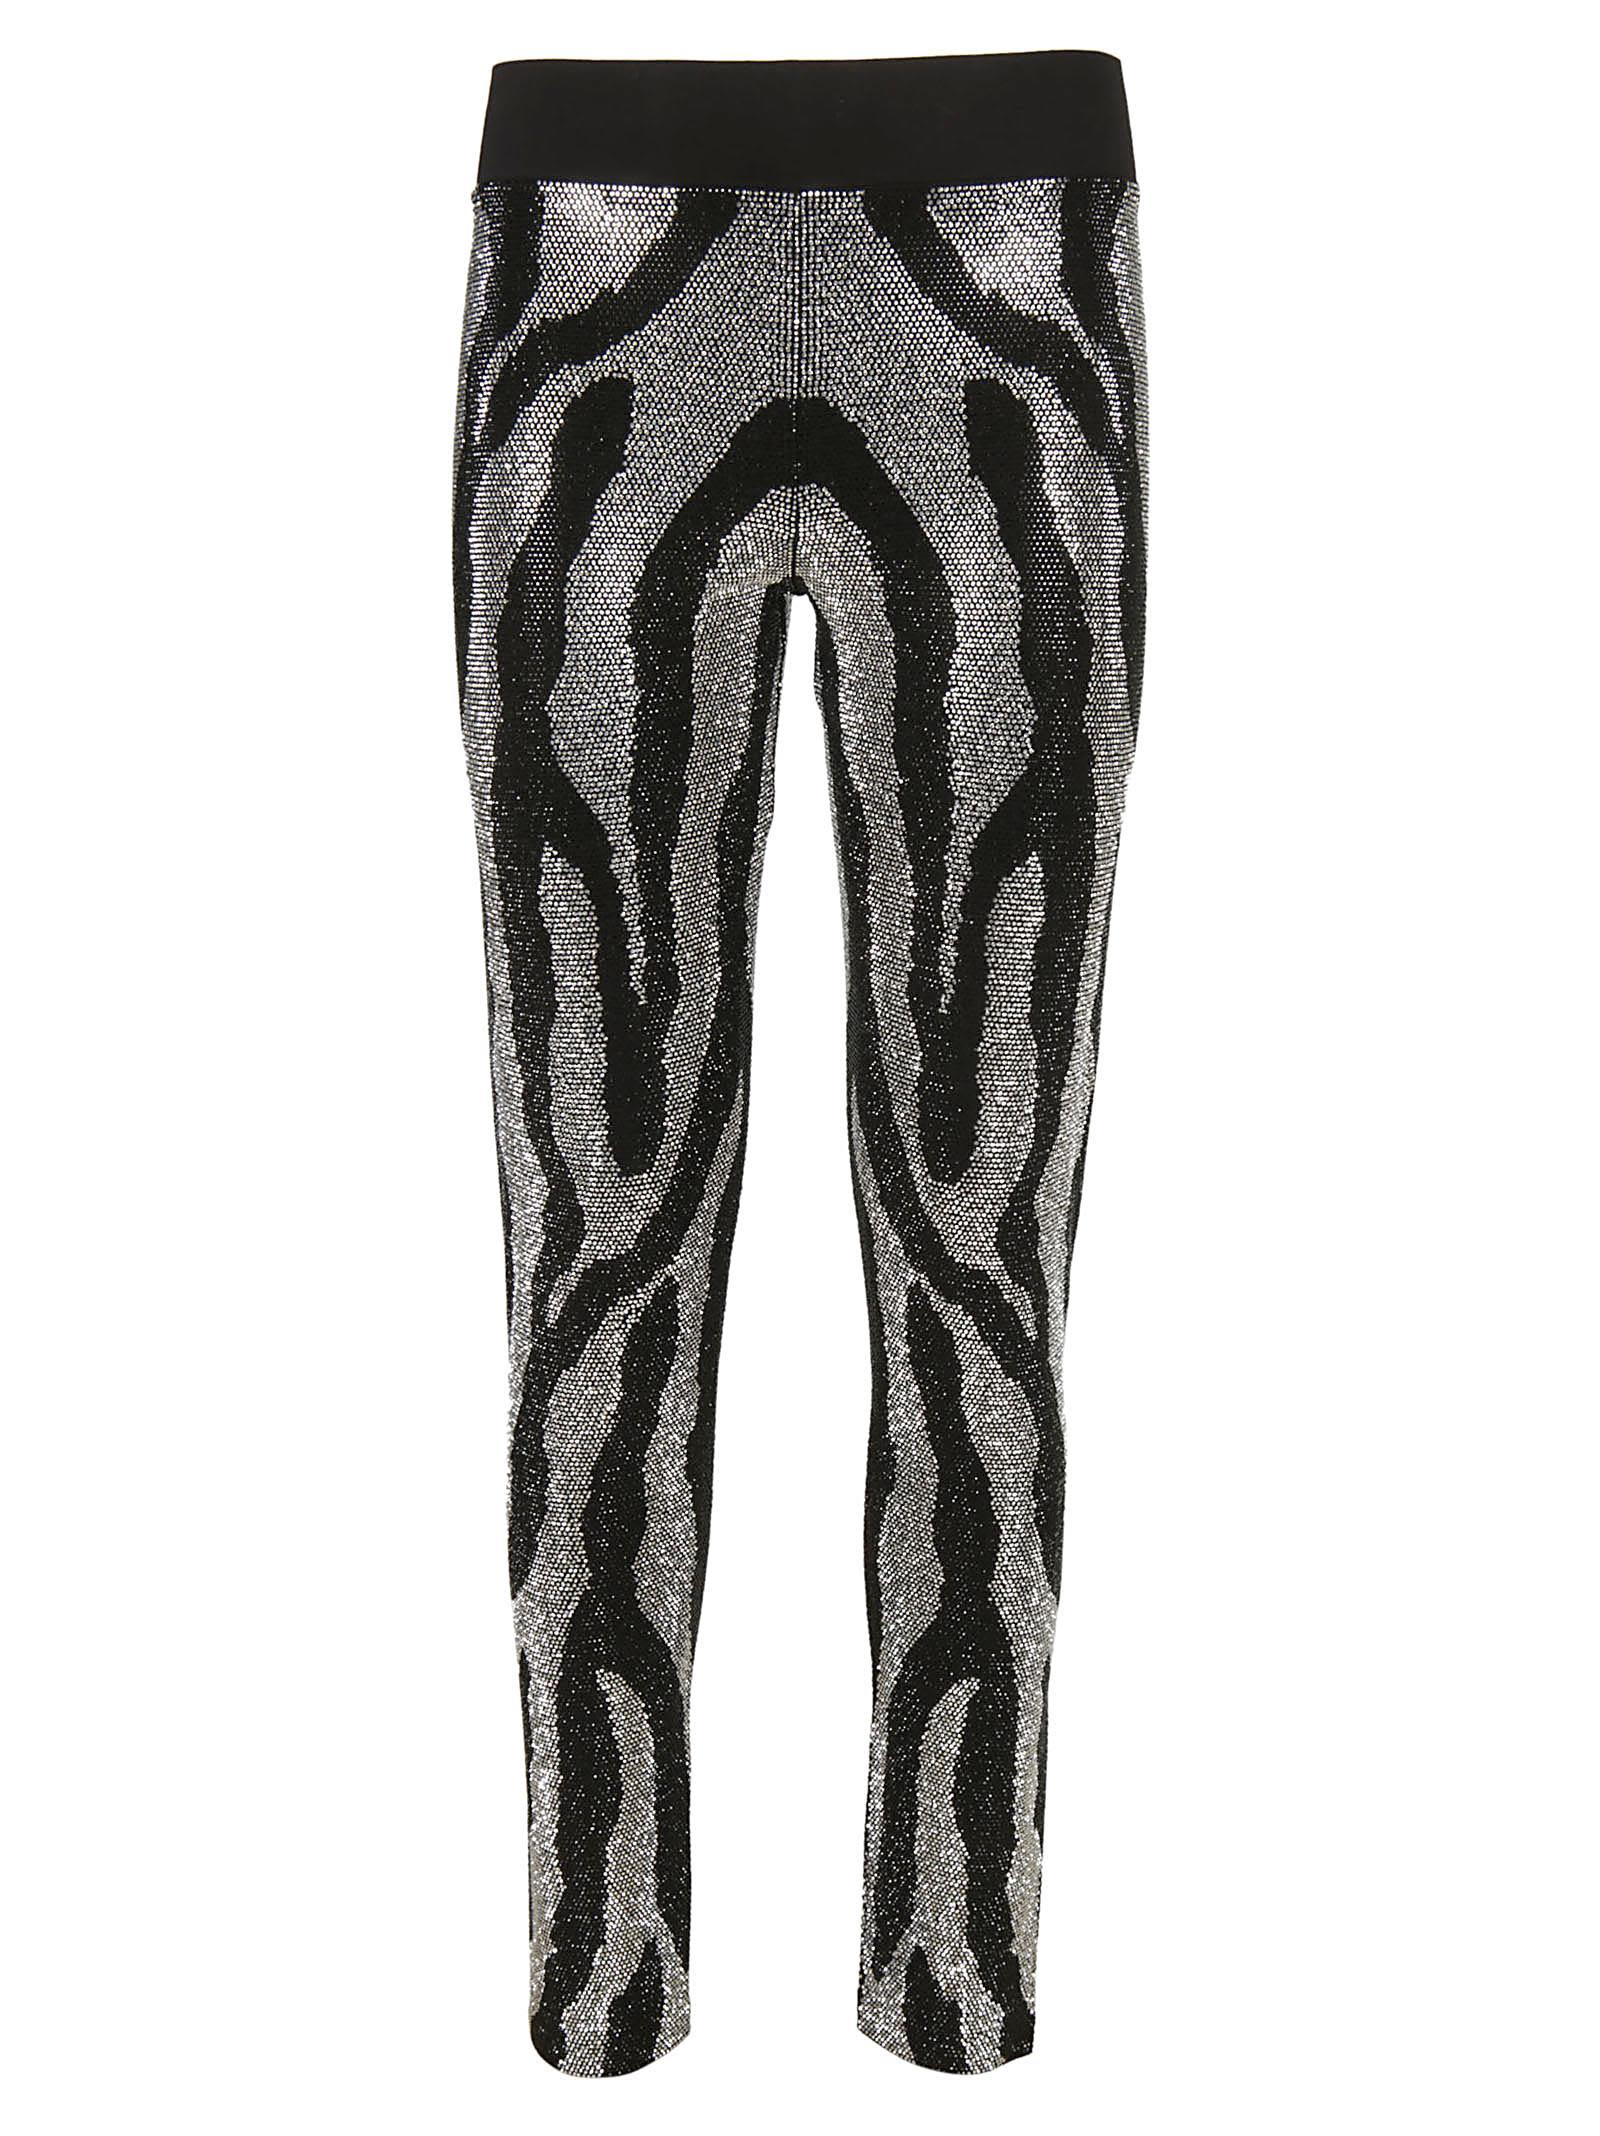 Philipp Plein Rhinestone Zebra Stripe Leggings